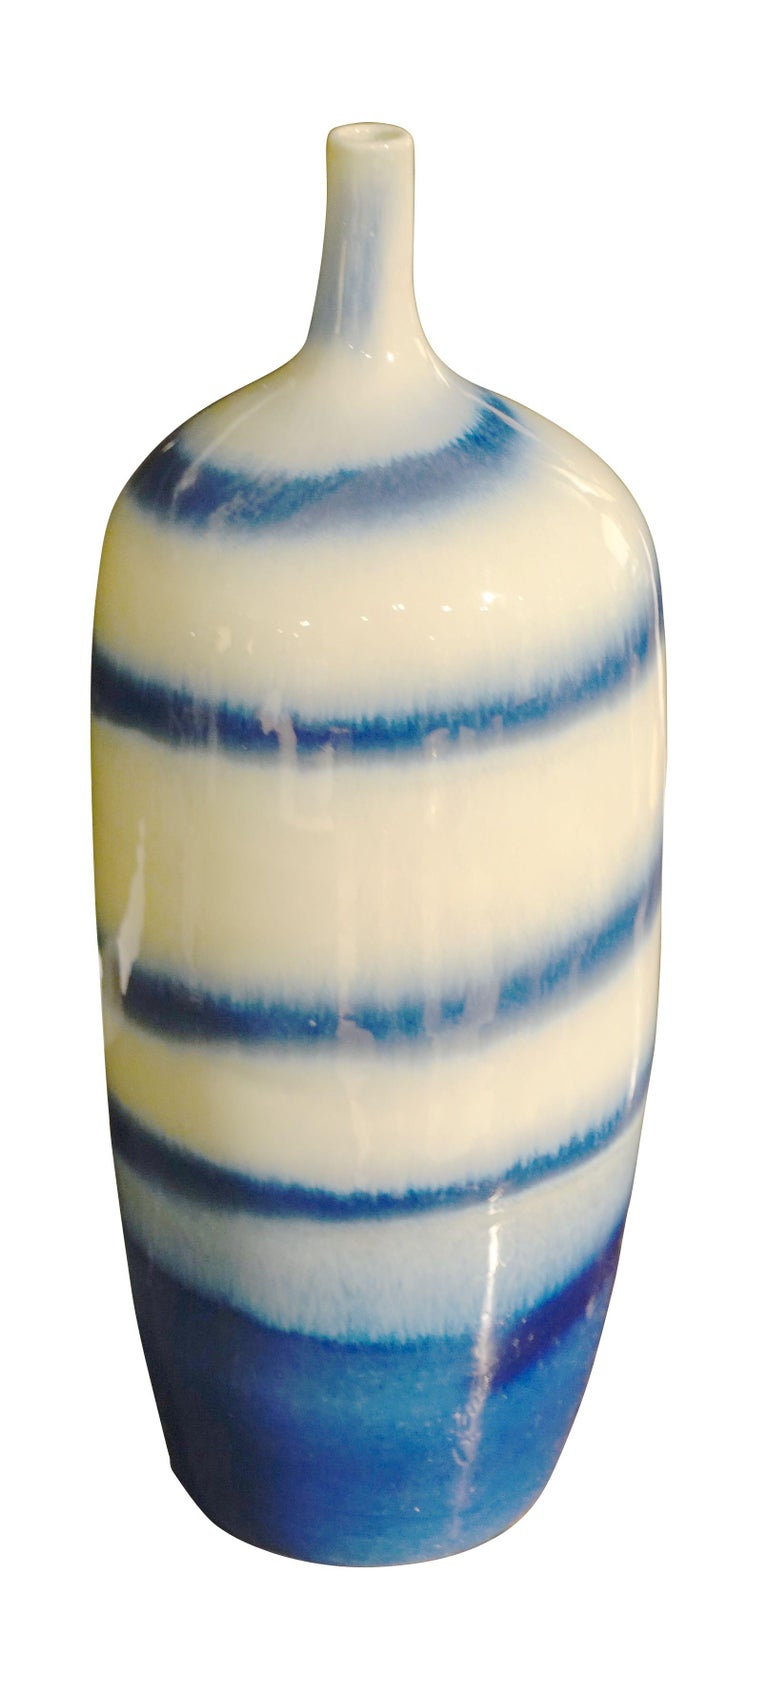 Contemporary Chinese shades of blue and white swirl pattern thin neck vase. Two are available and sold individually.